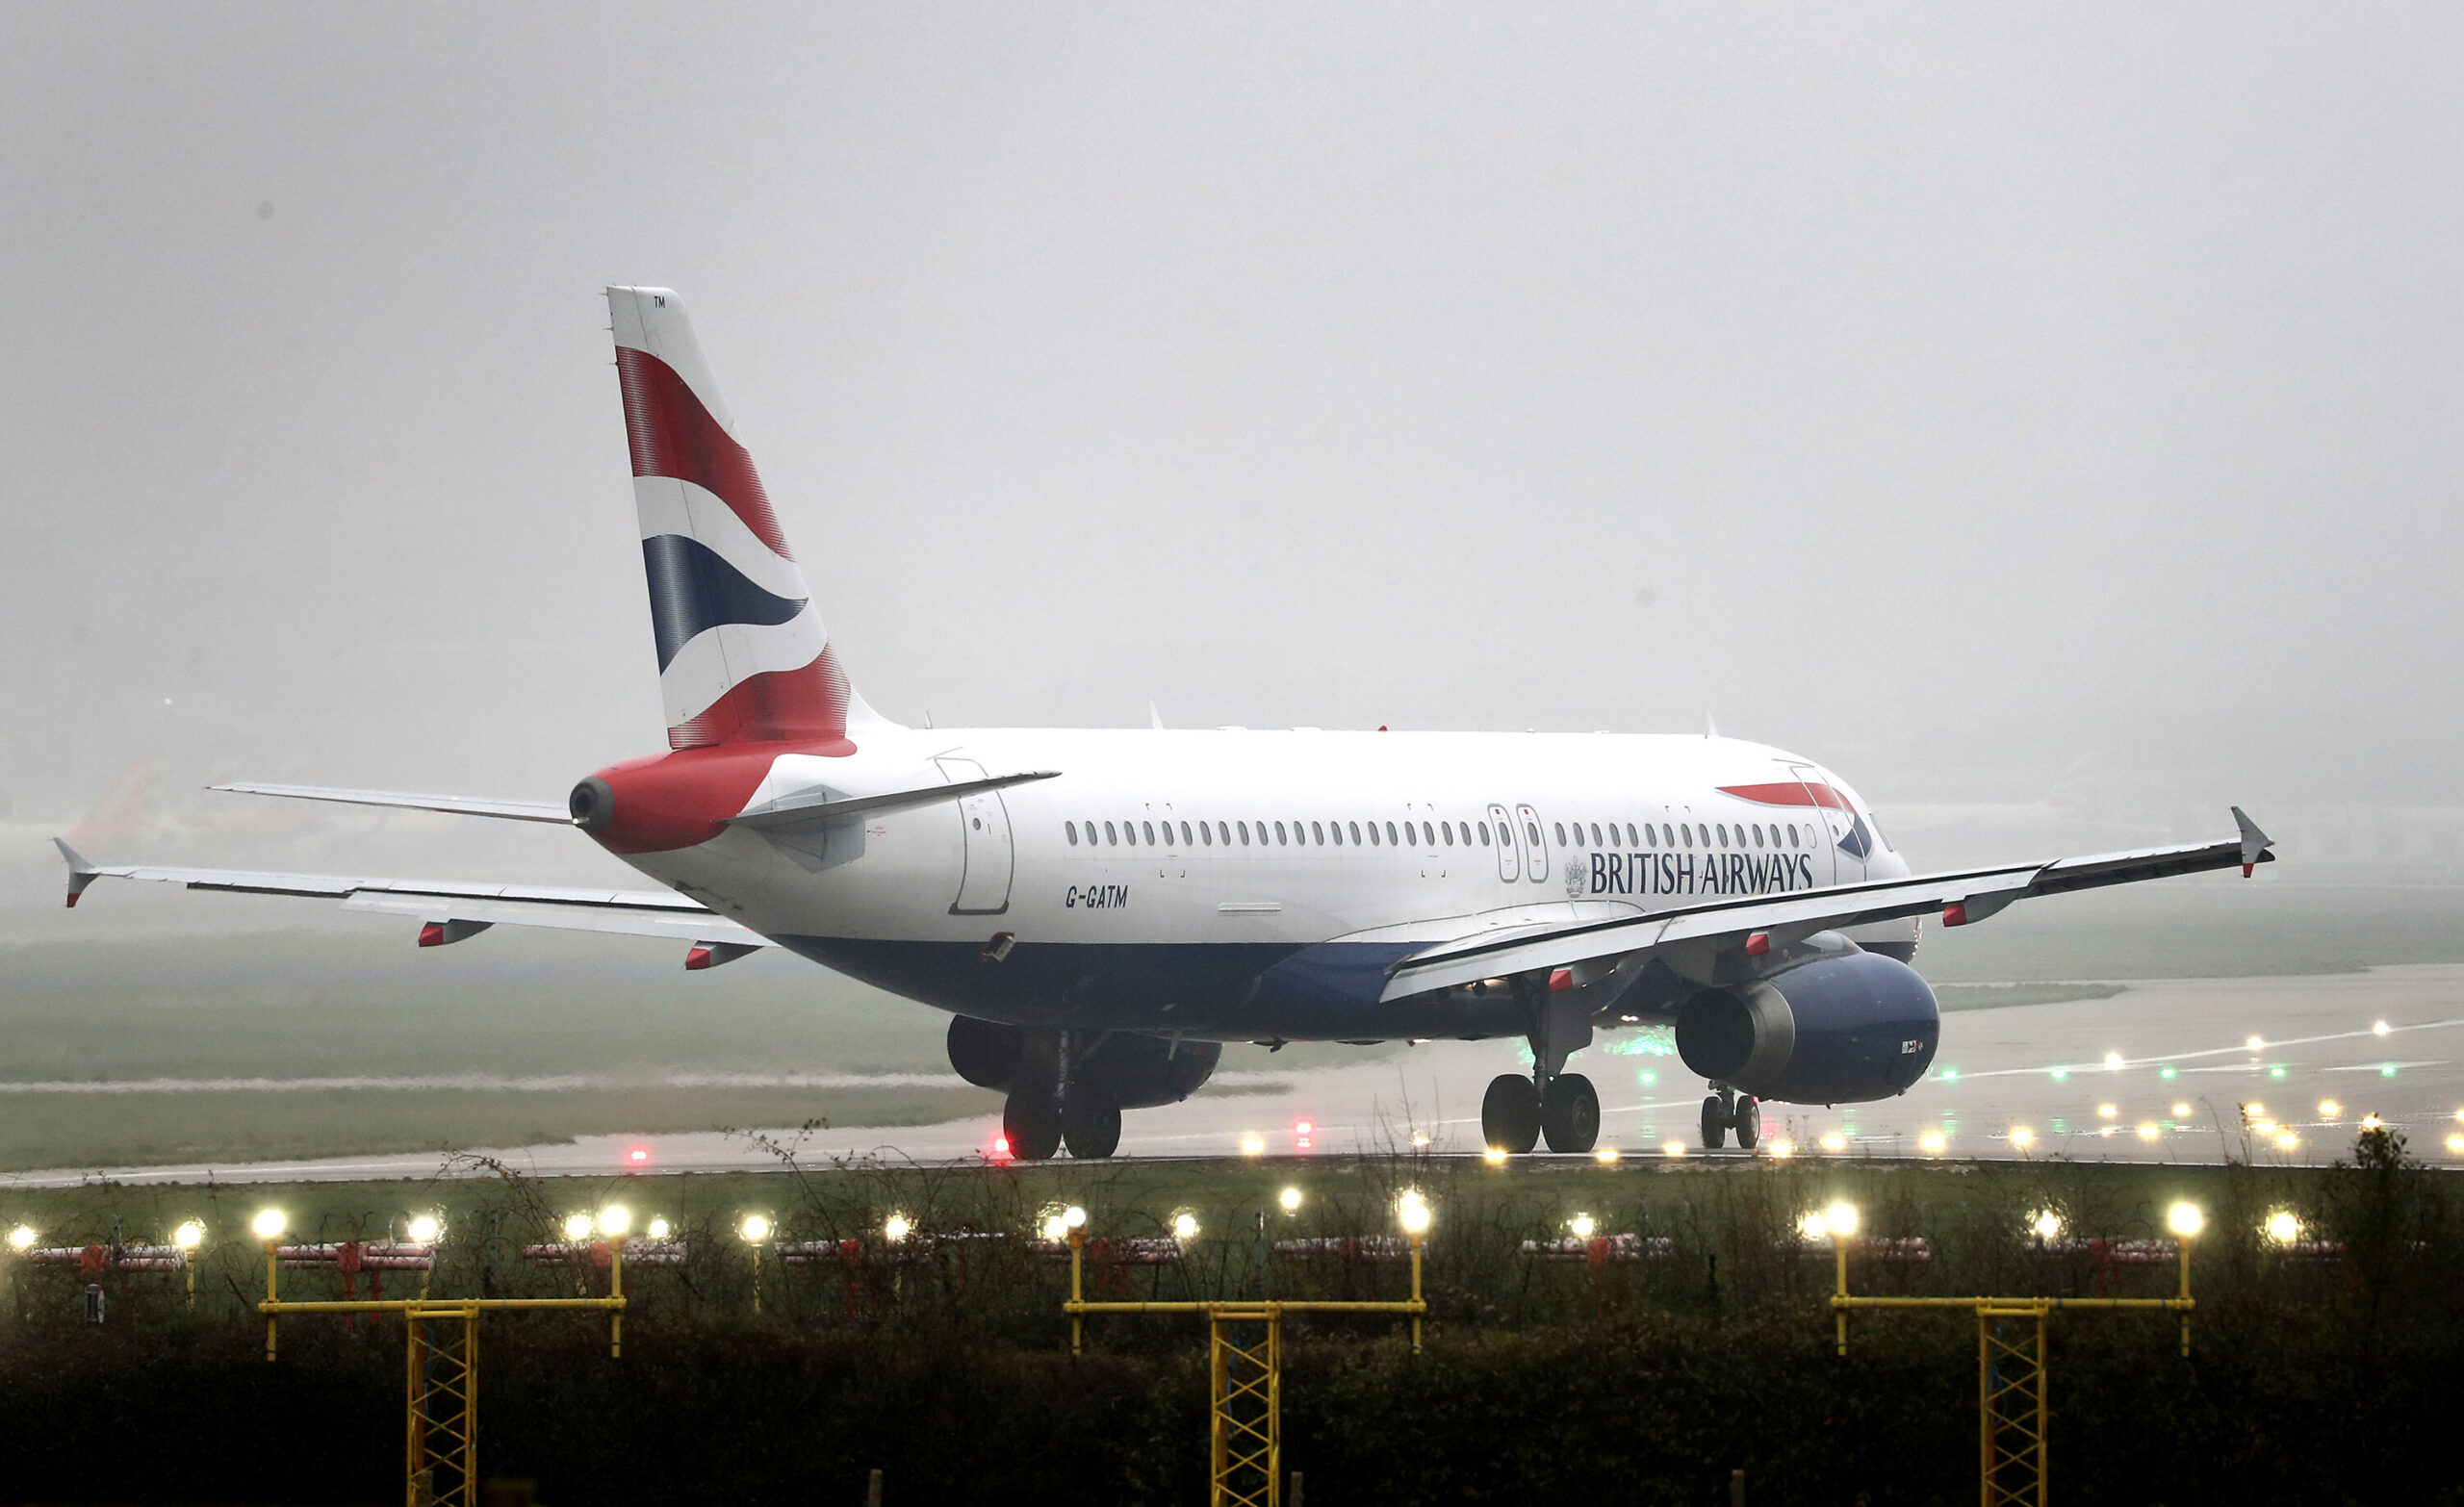 <i>Gareth Fuller/PA Wire/AP</i><br/>British Airways has abandoned plans to launch a low-cost carrier at London's second biggest airport.